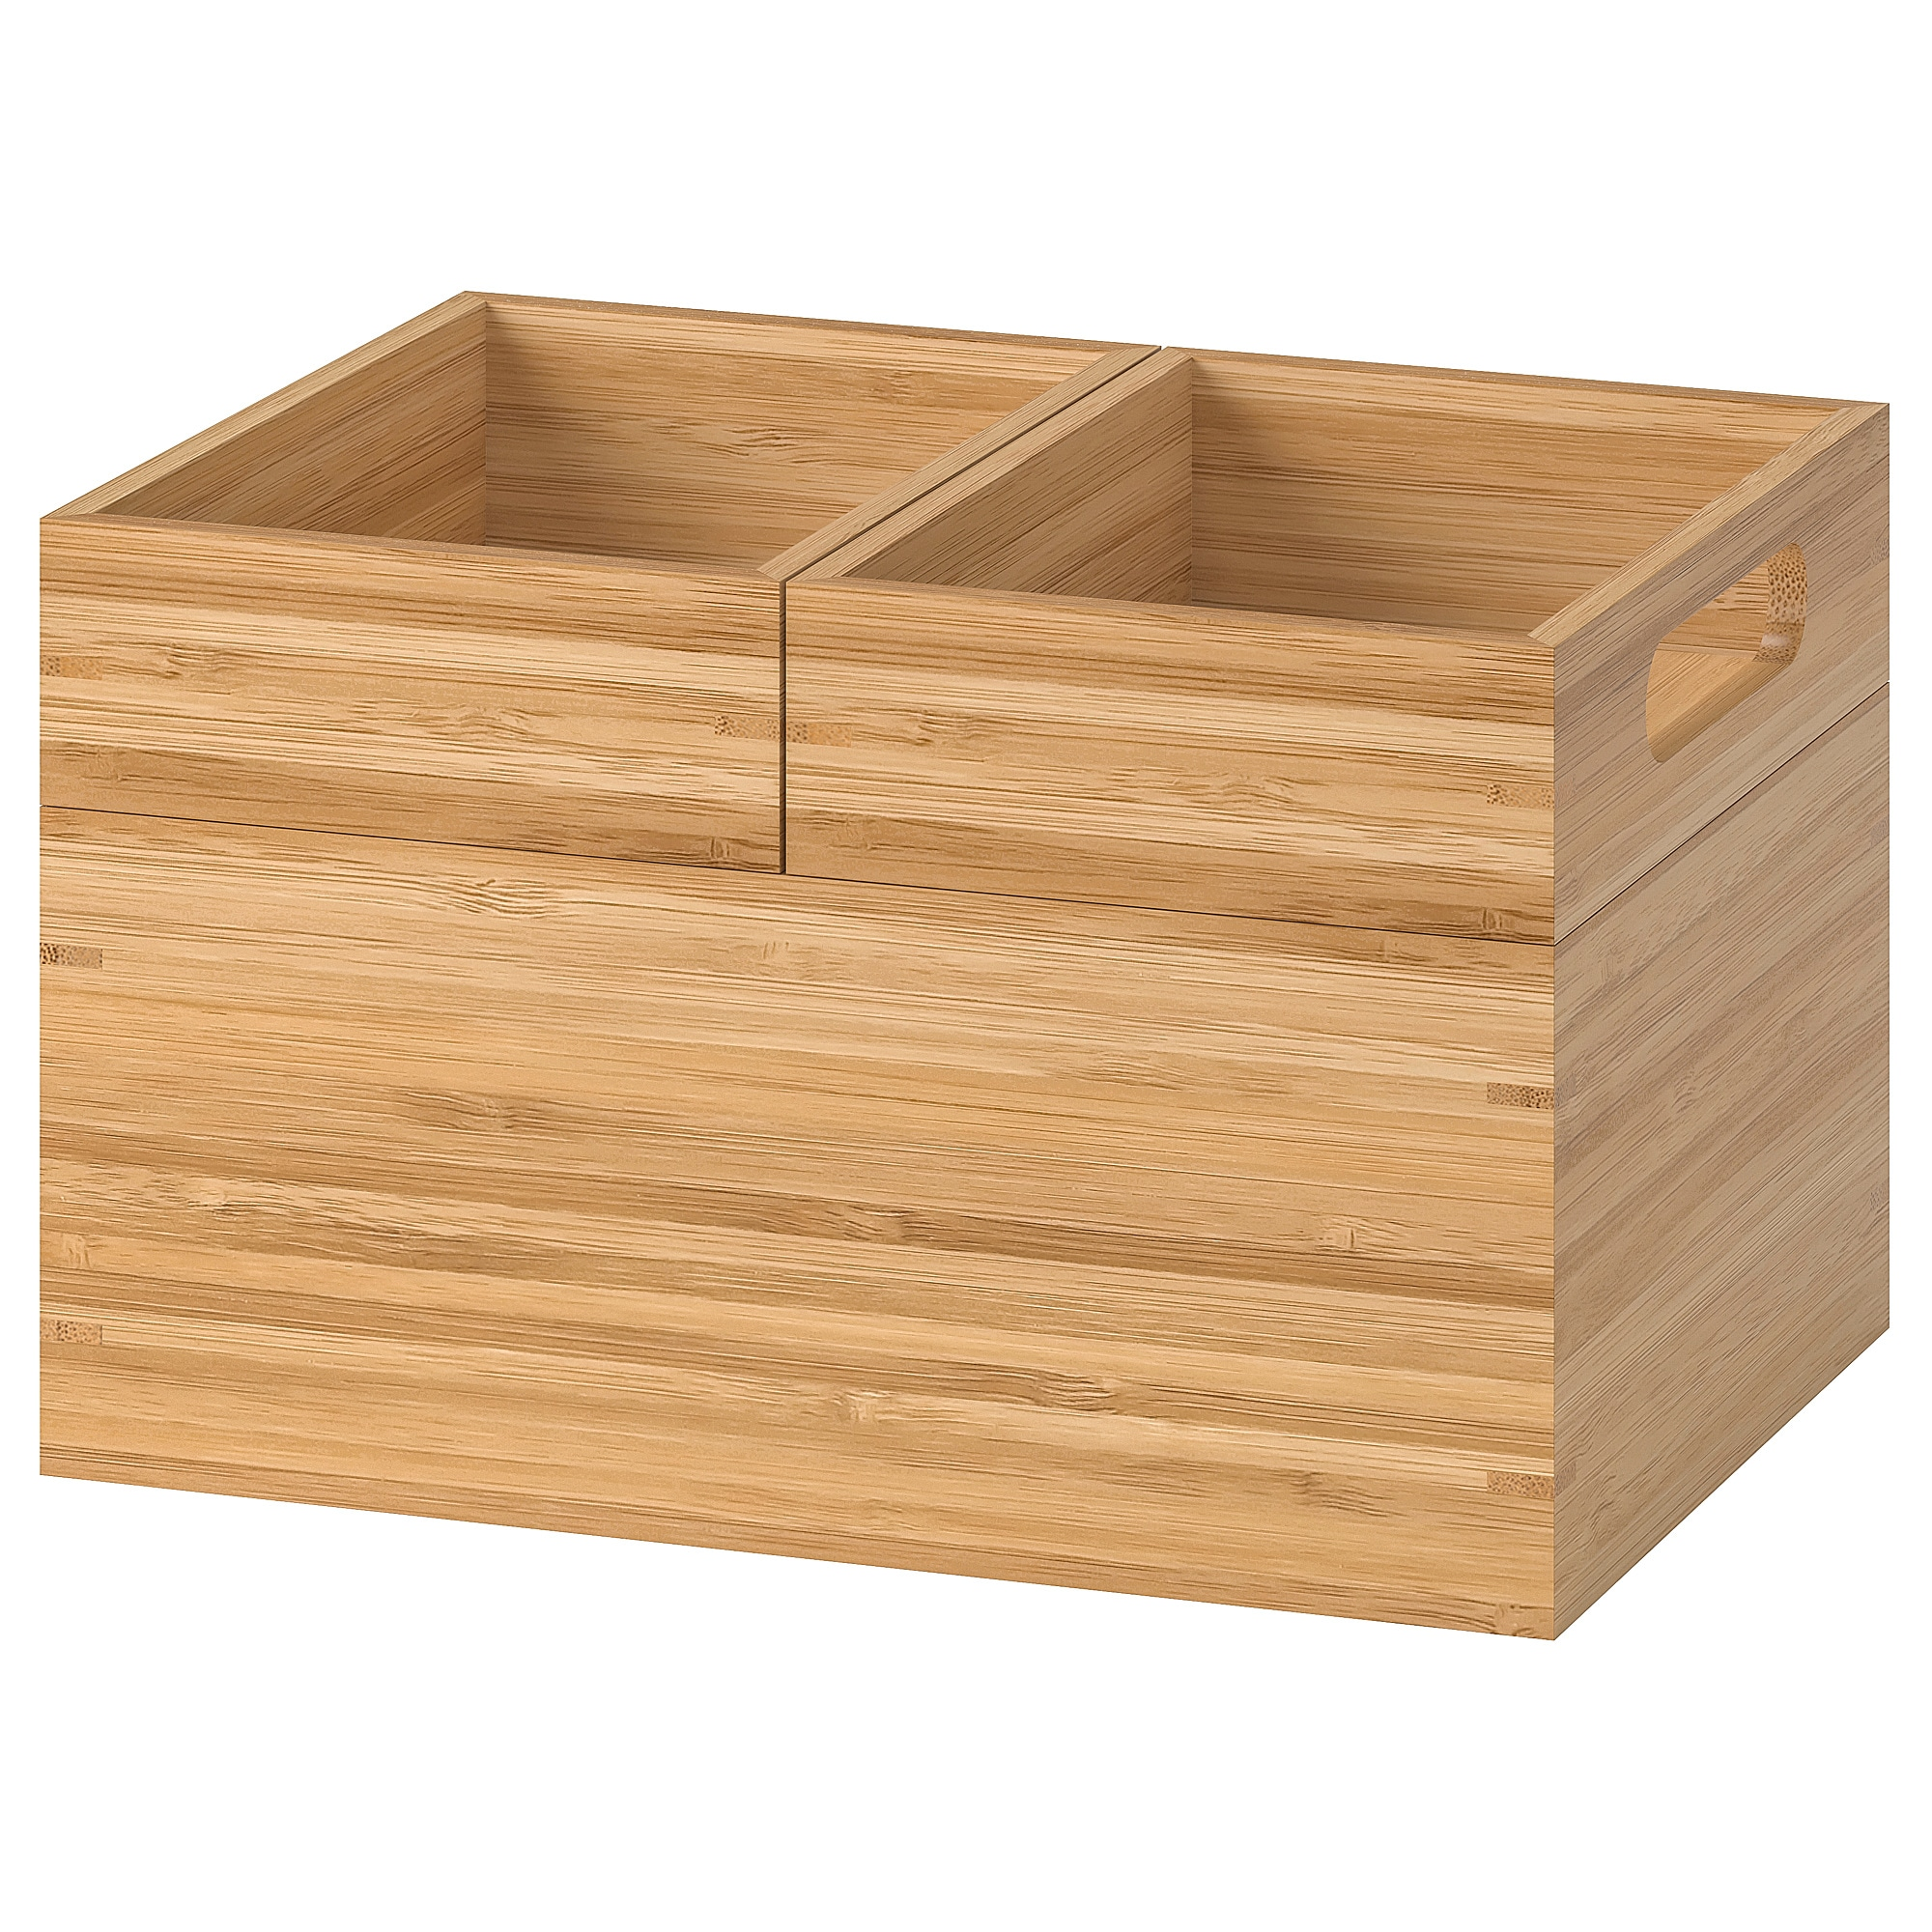 dragan box 3er-set - ikea